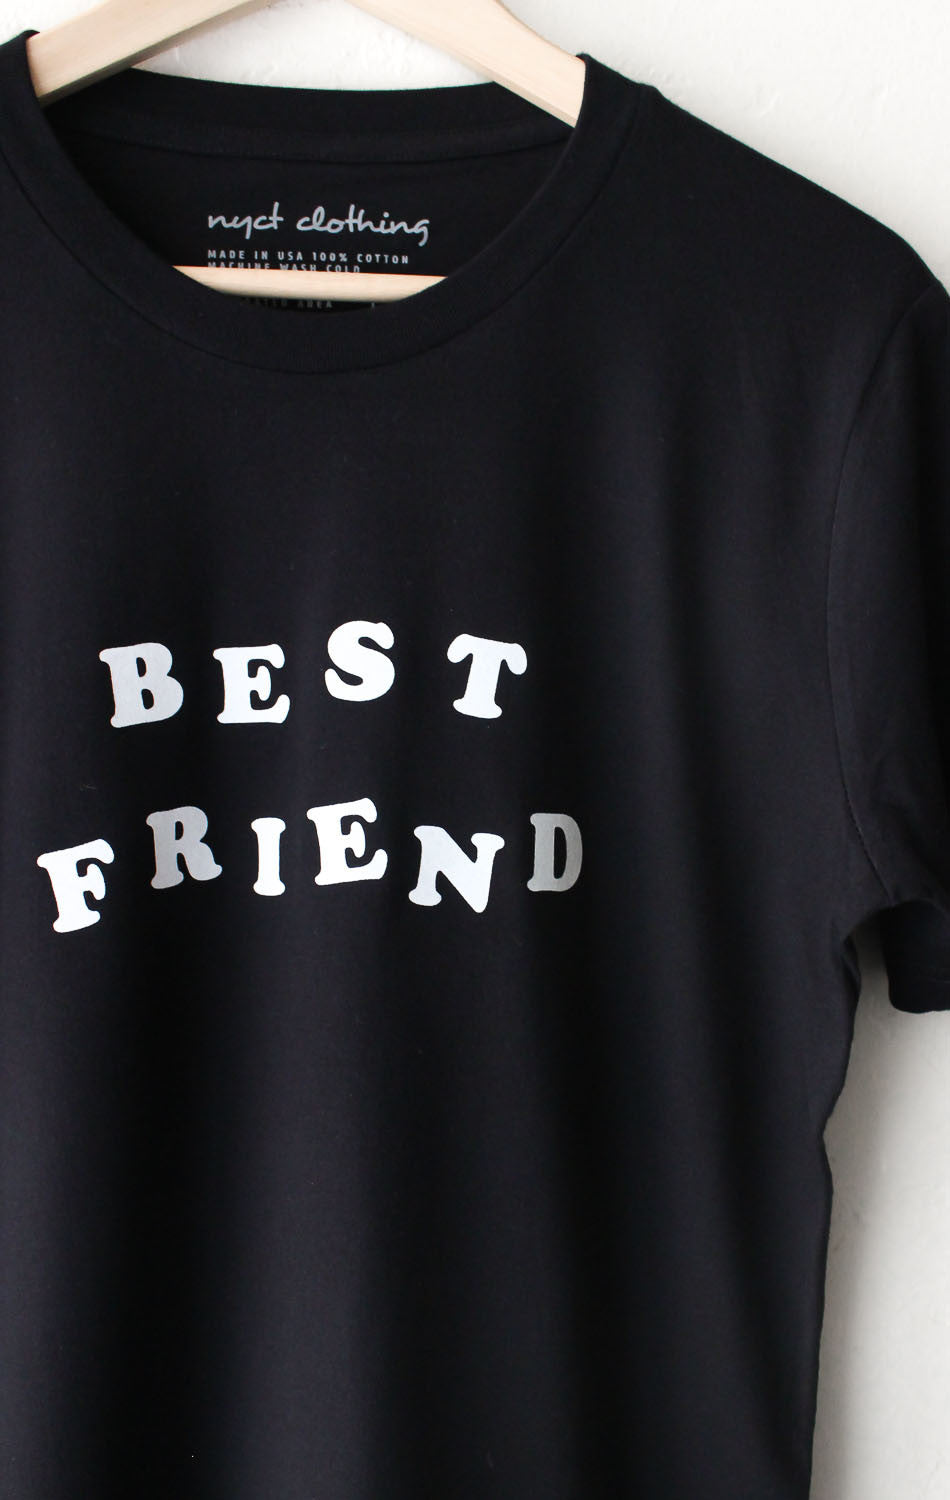 NYCT Clothing Best Friend Tee